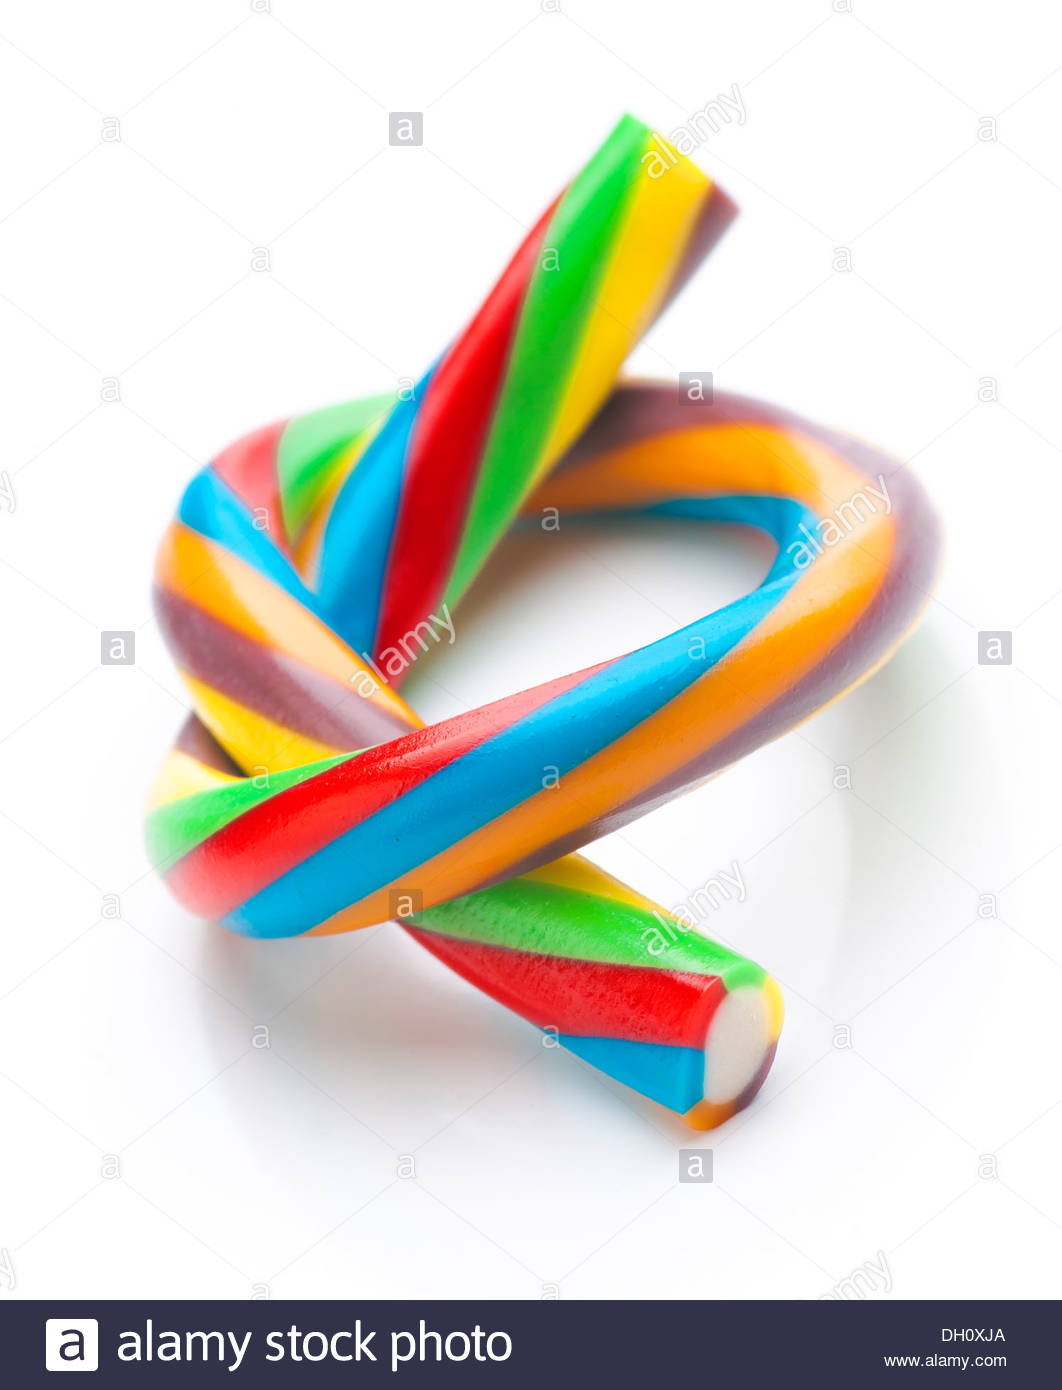 ties rods colored soft licorice - Stock Image